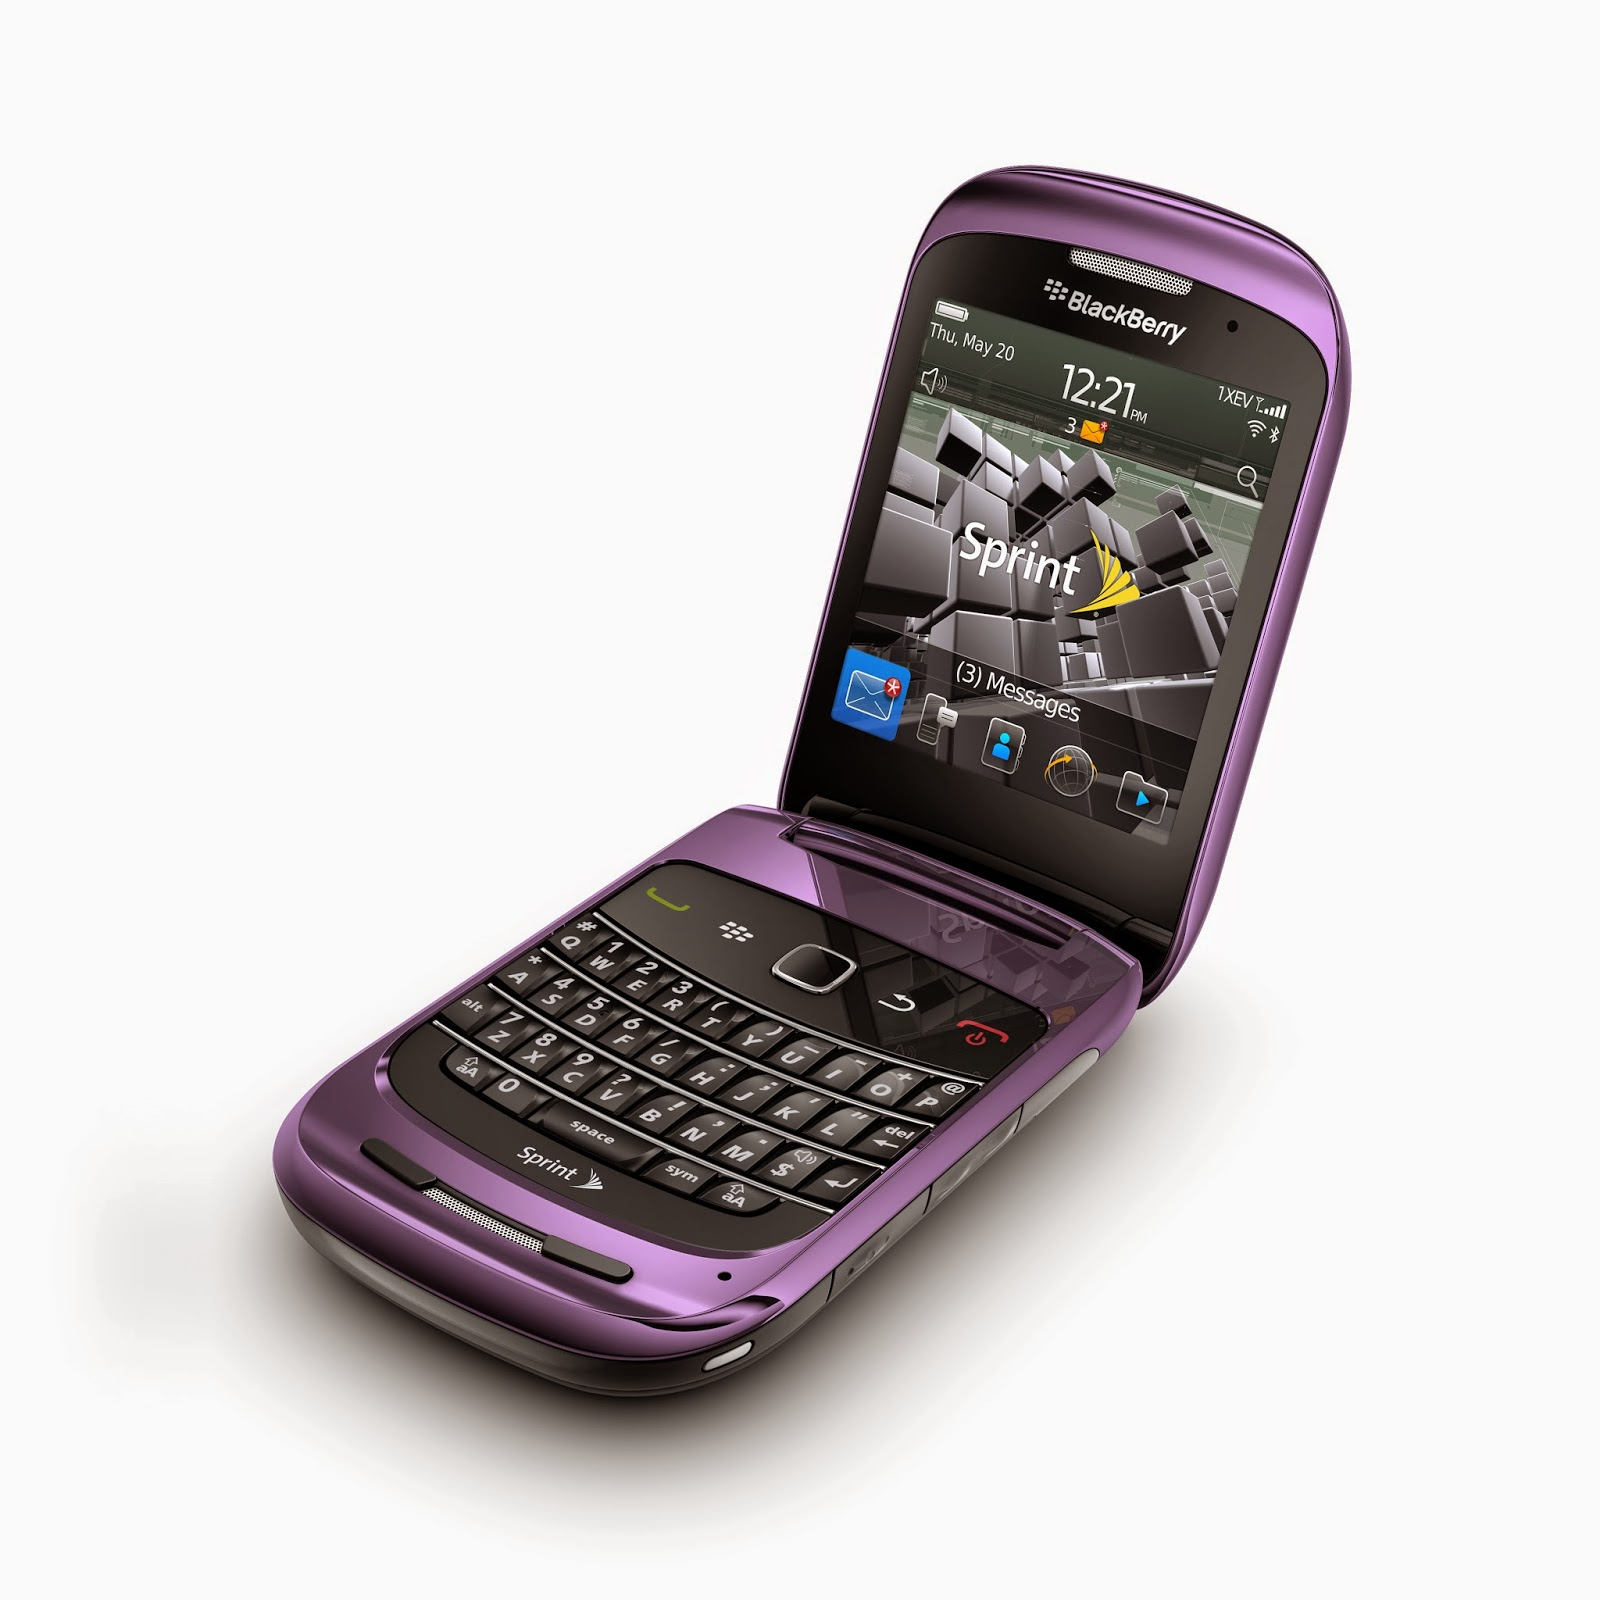 Porsche design p'9981 for blackberry torch 9800 themes free.